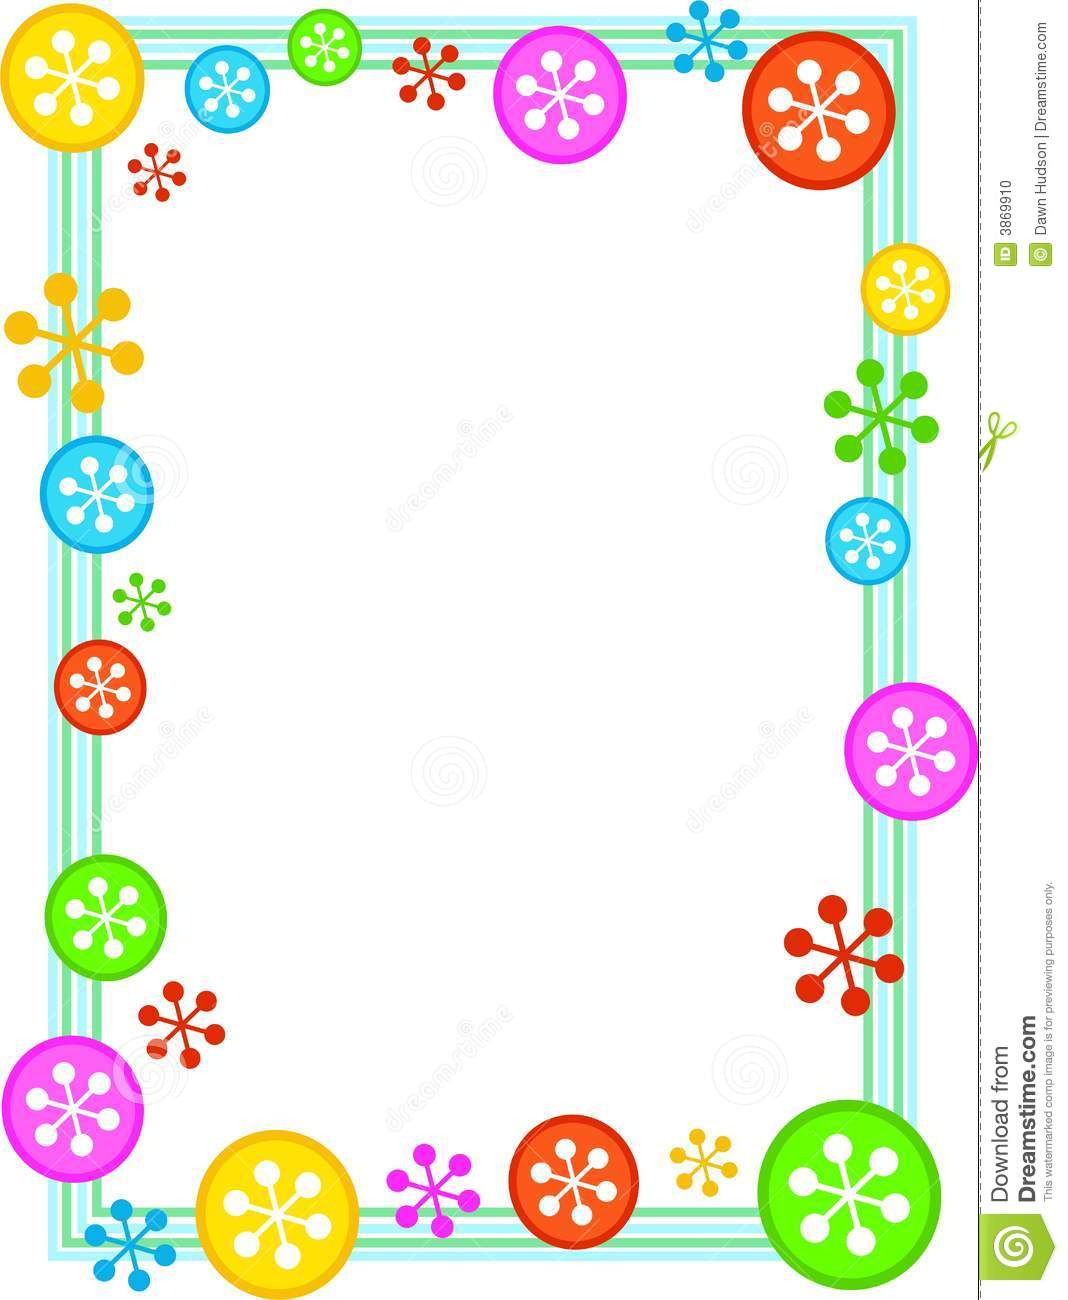 Border Design For Kids Images & Pictures - Becuo